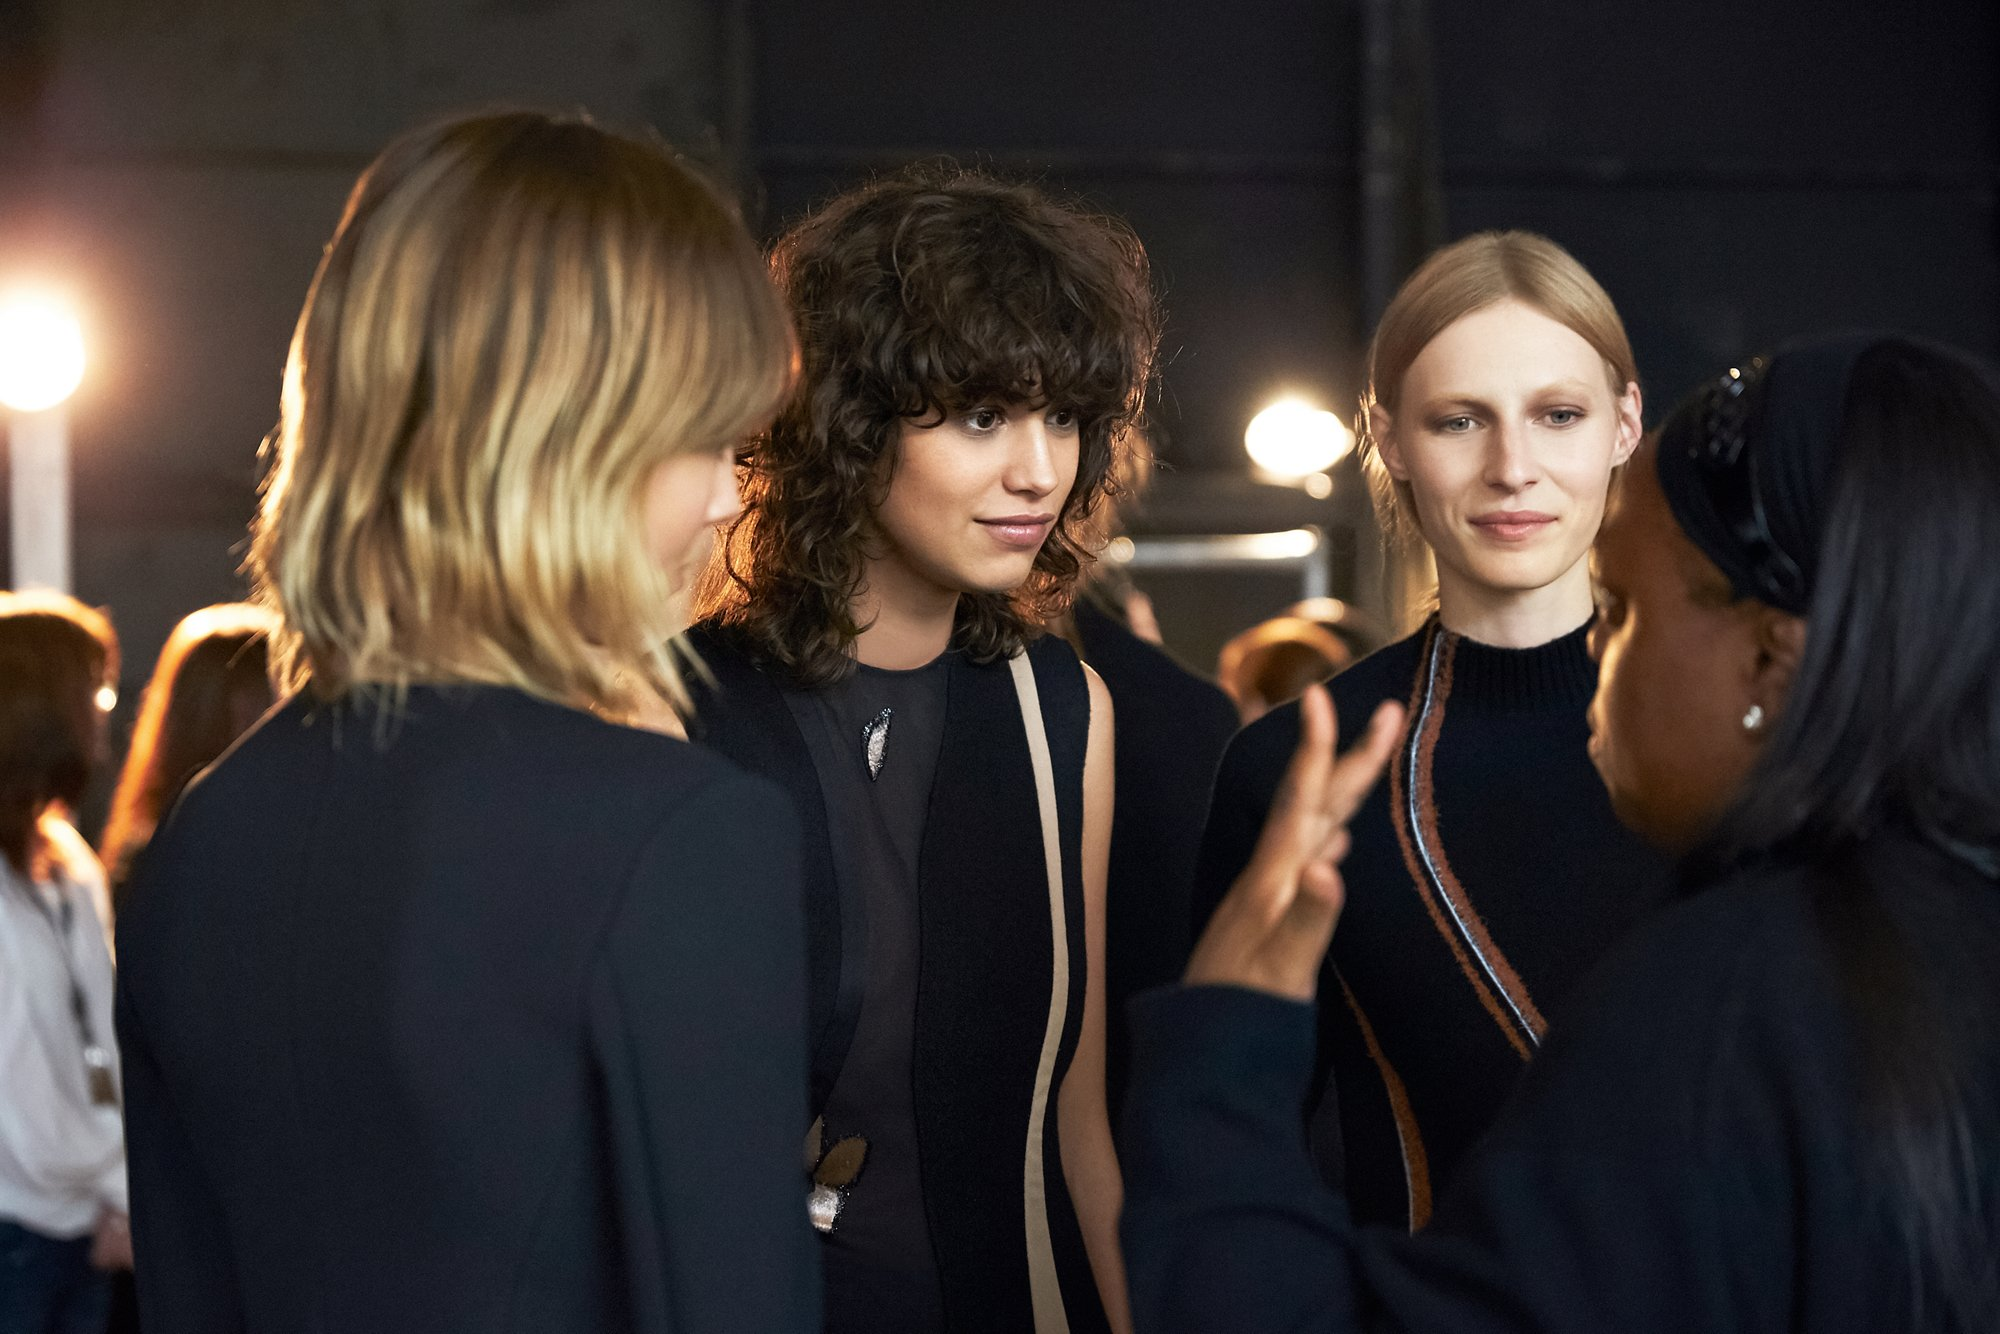 Modellen backstage tijdens de New York Fashion Week Herfst/Winter 2016, in zwarte en oranje jurken van BOSS